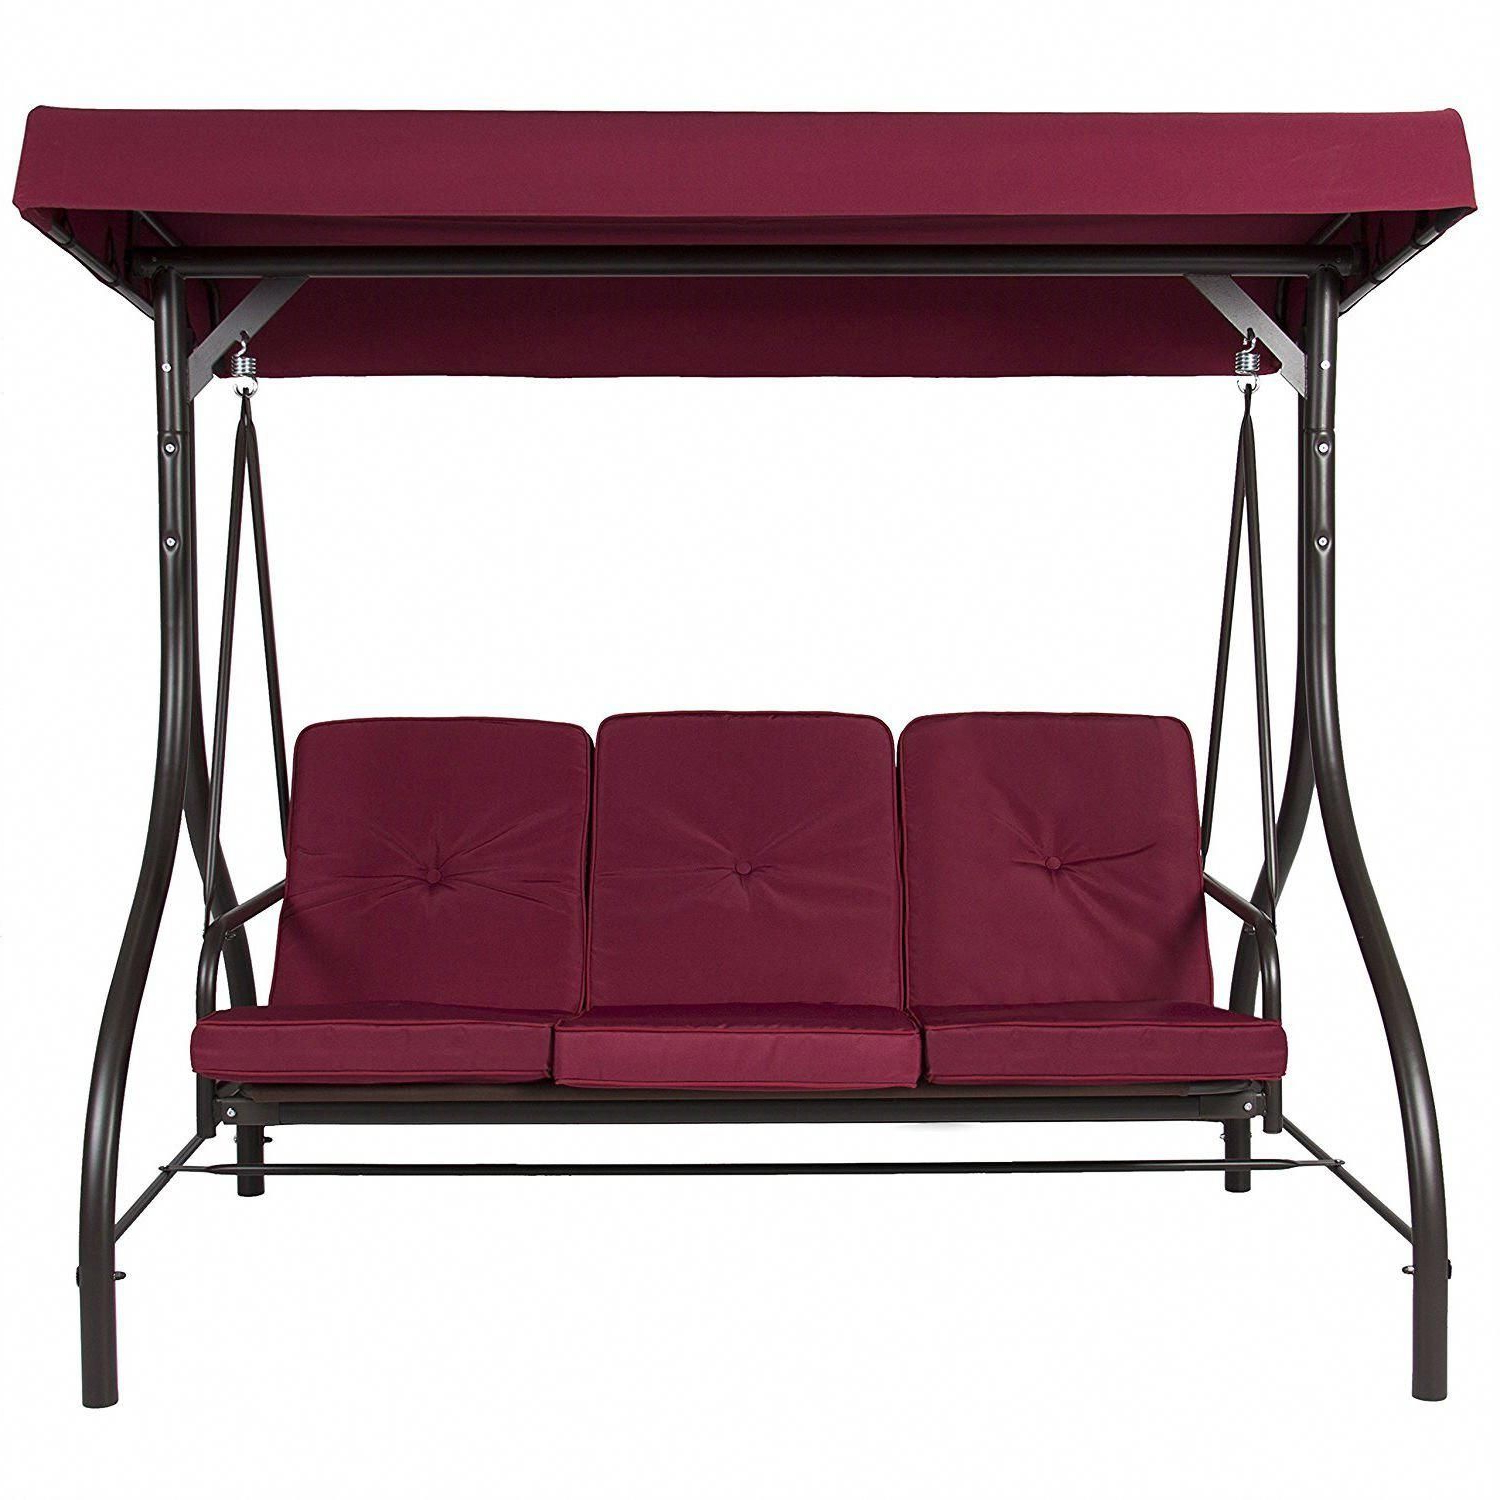 Most Current Outdoor Canopy Hammock Porch Swings With Stand Within Burgundy Outdoor Patio Deck Porch Canopy Swing With Cushions (Gallery 4 of 30)